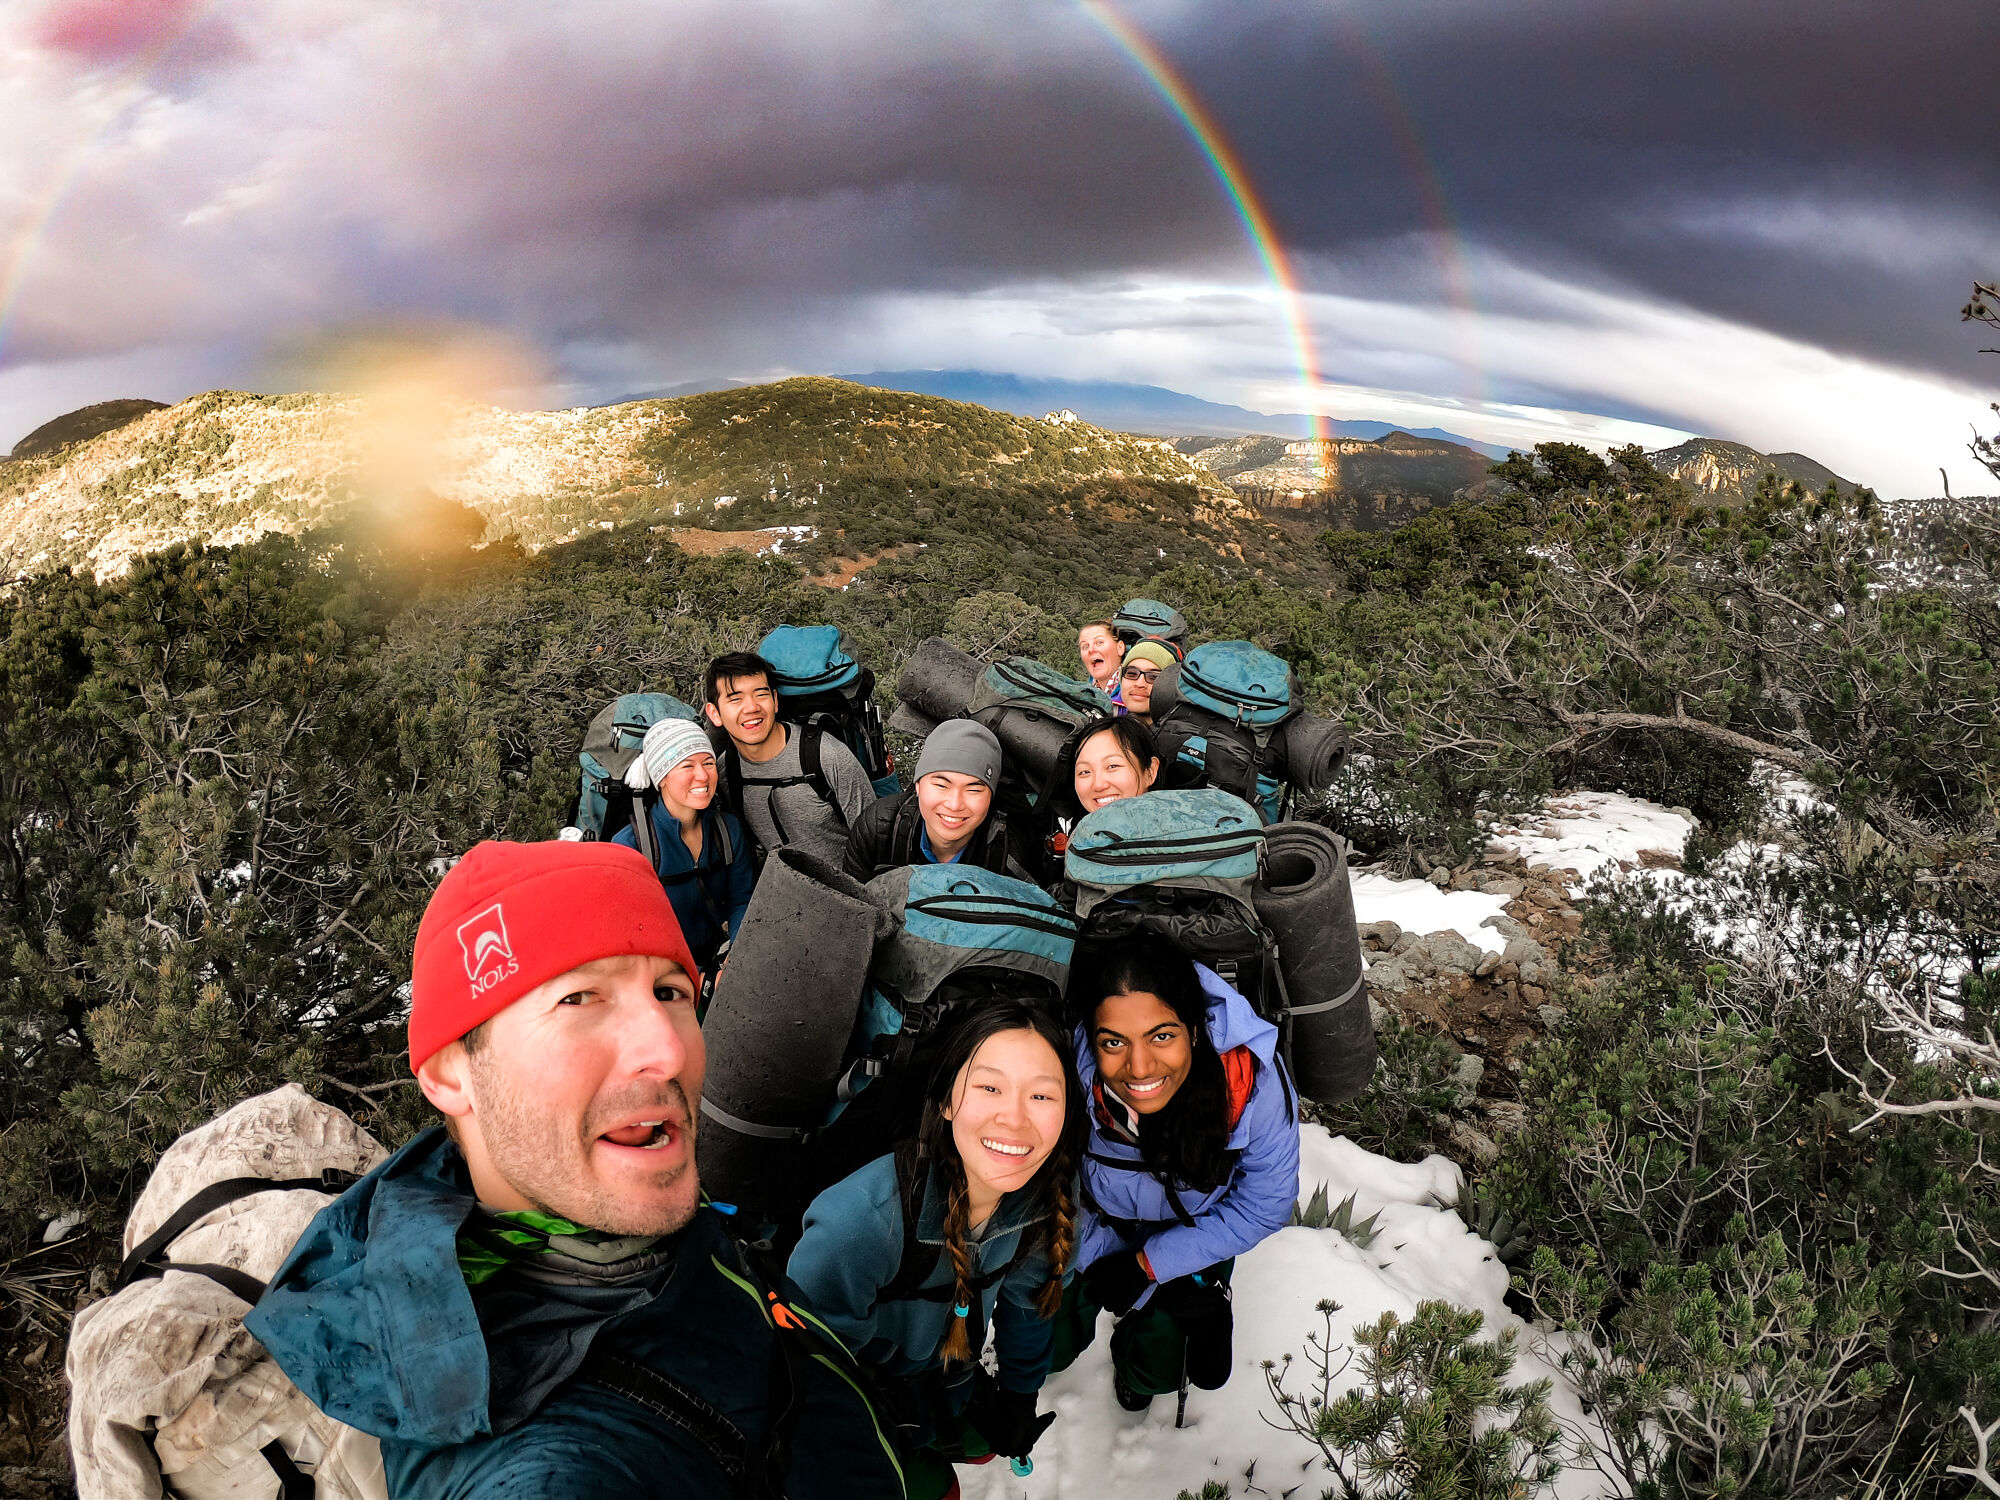 Group smiles with a rainbow in the background